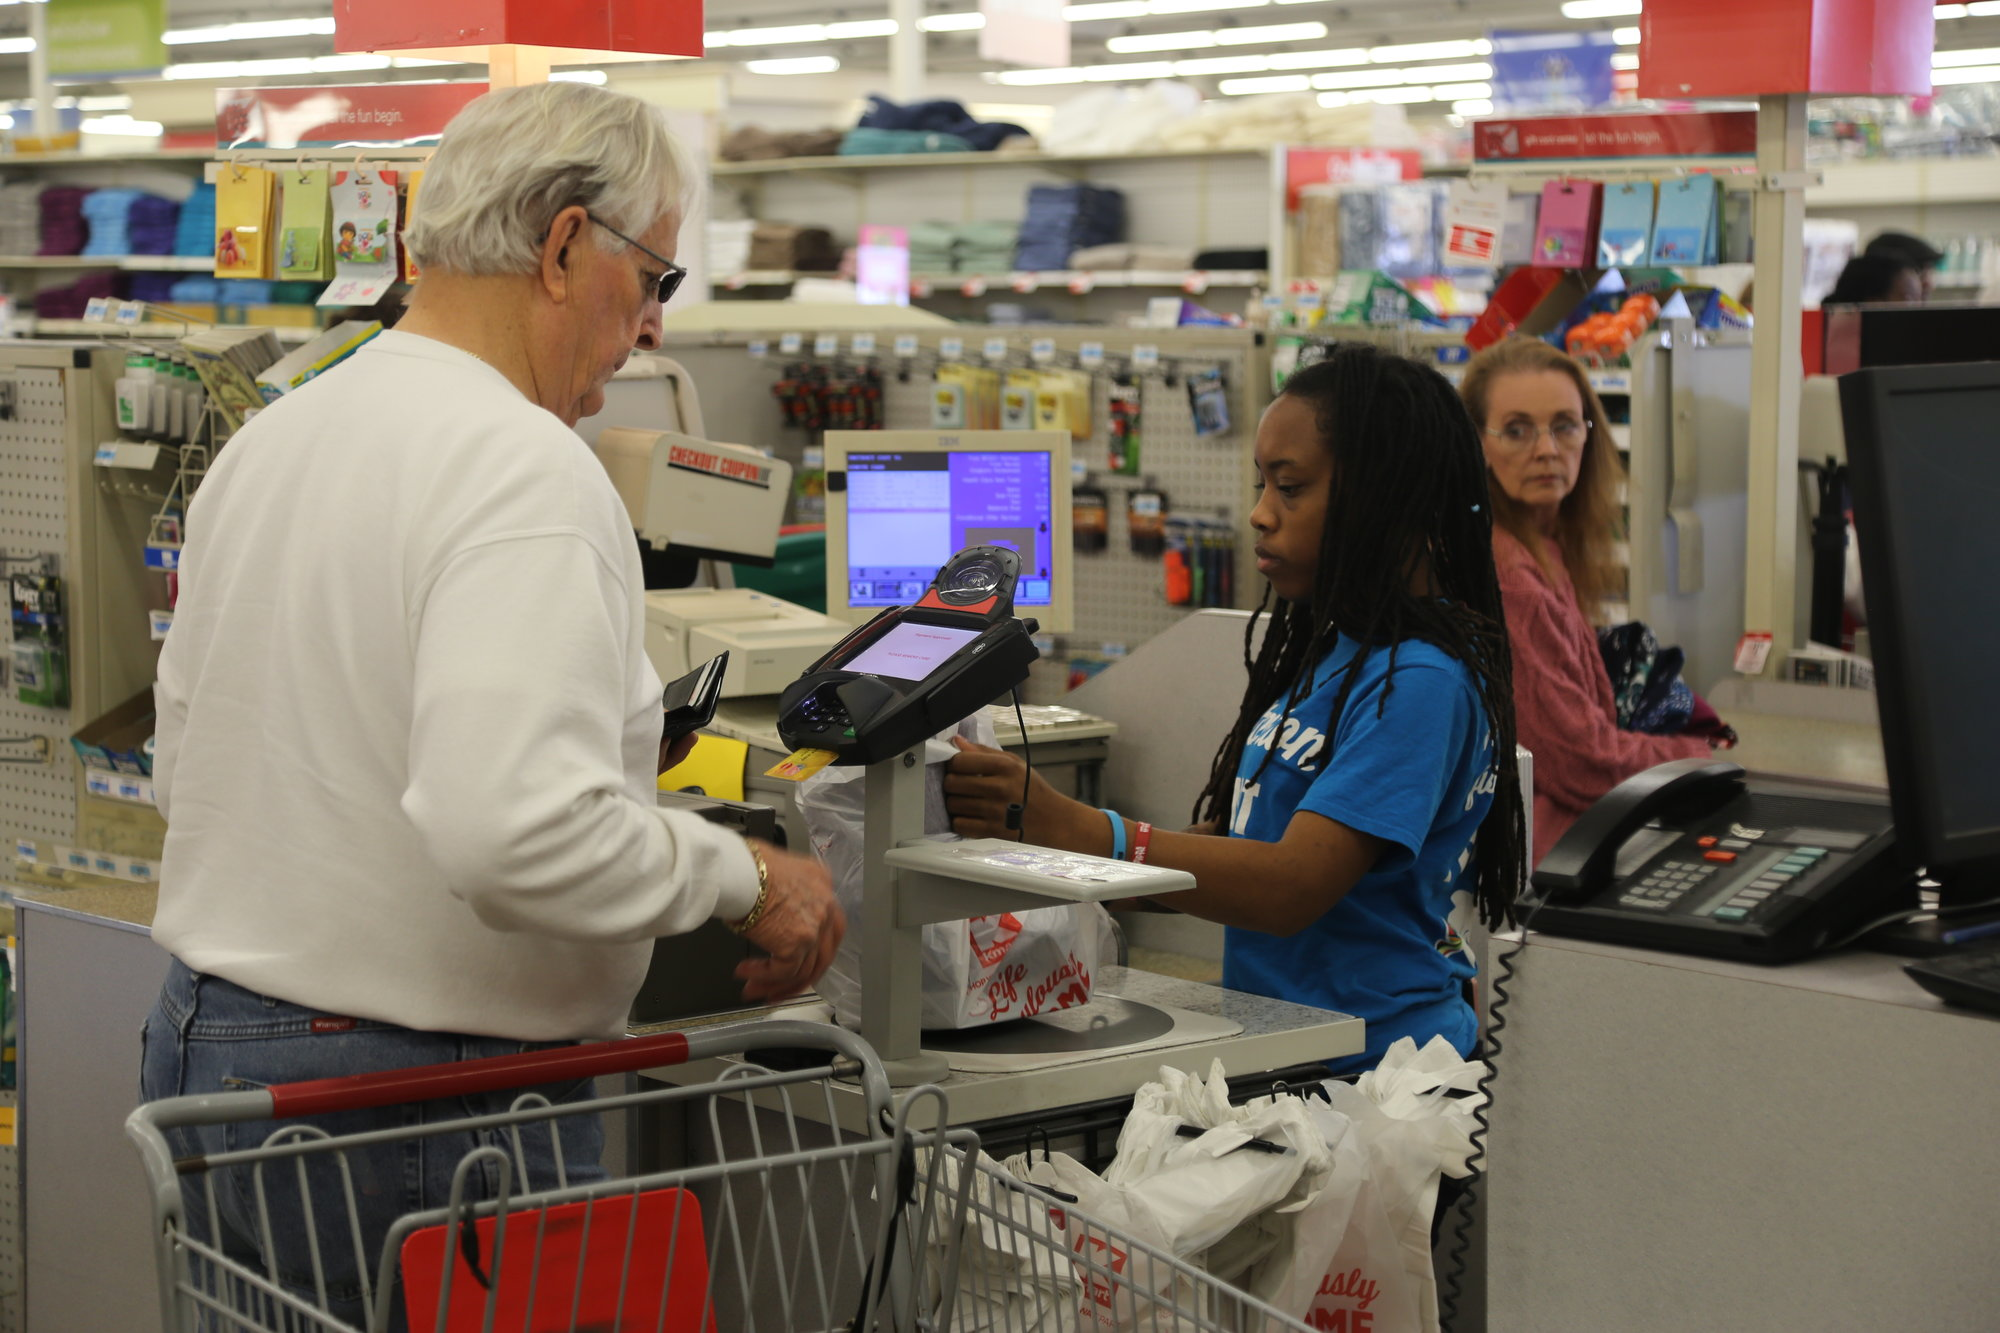 SUMTER ITEM FILE PHOTO A Sumter Kmart employee helps a customer at check-out recently.